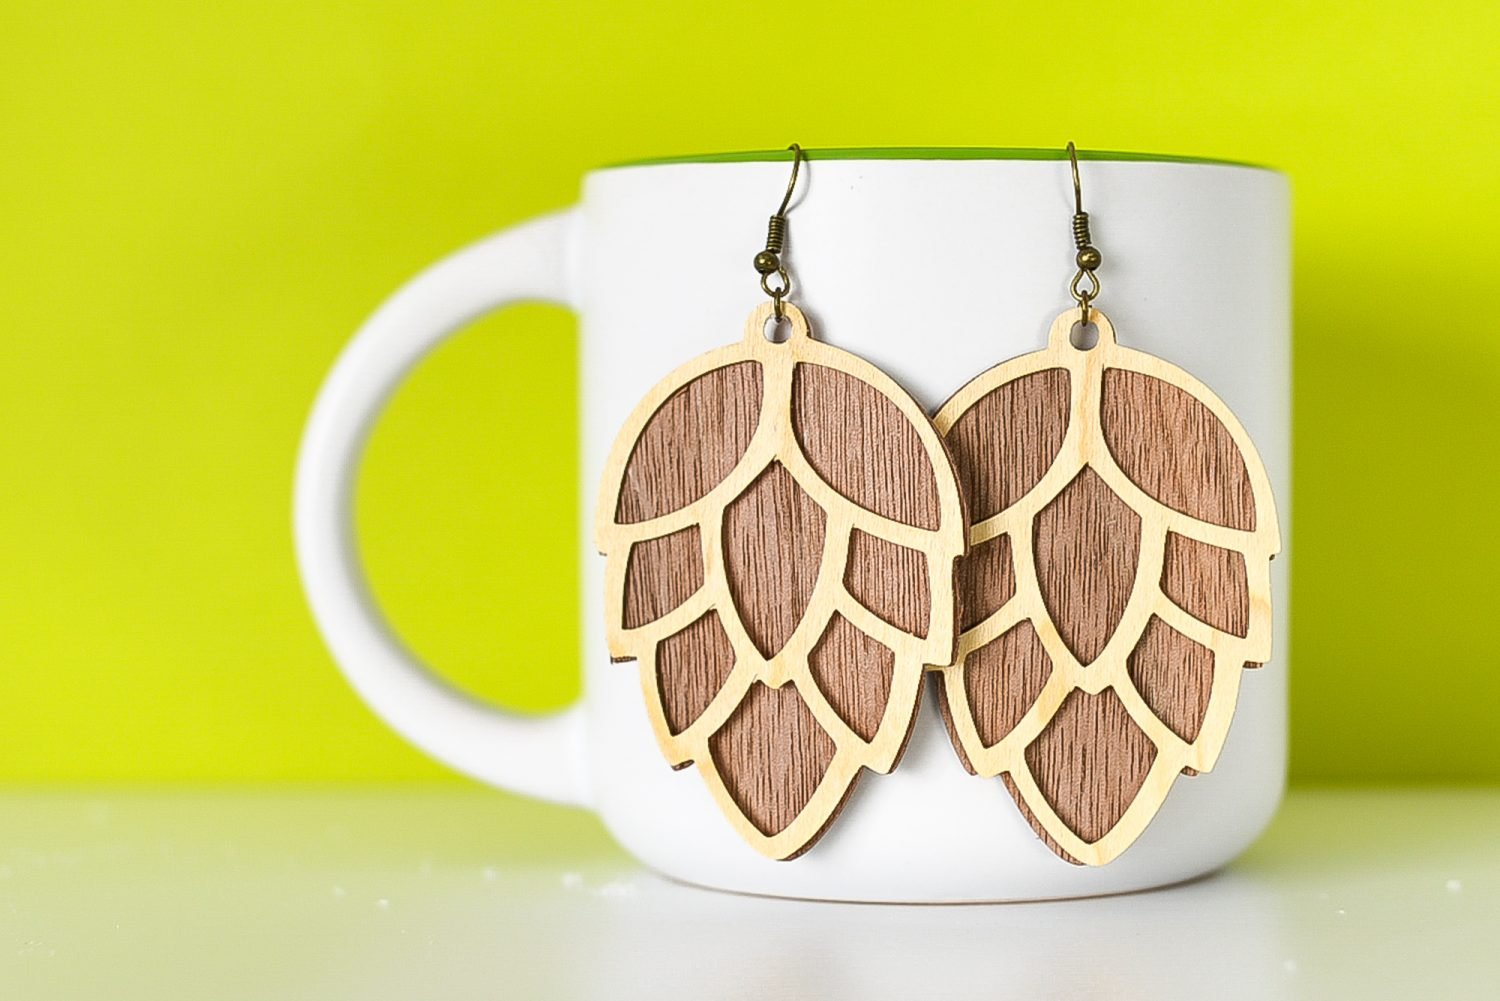 Finished pinecone earrings hanging from a mug with a green background.